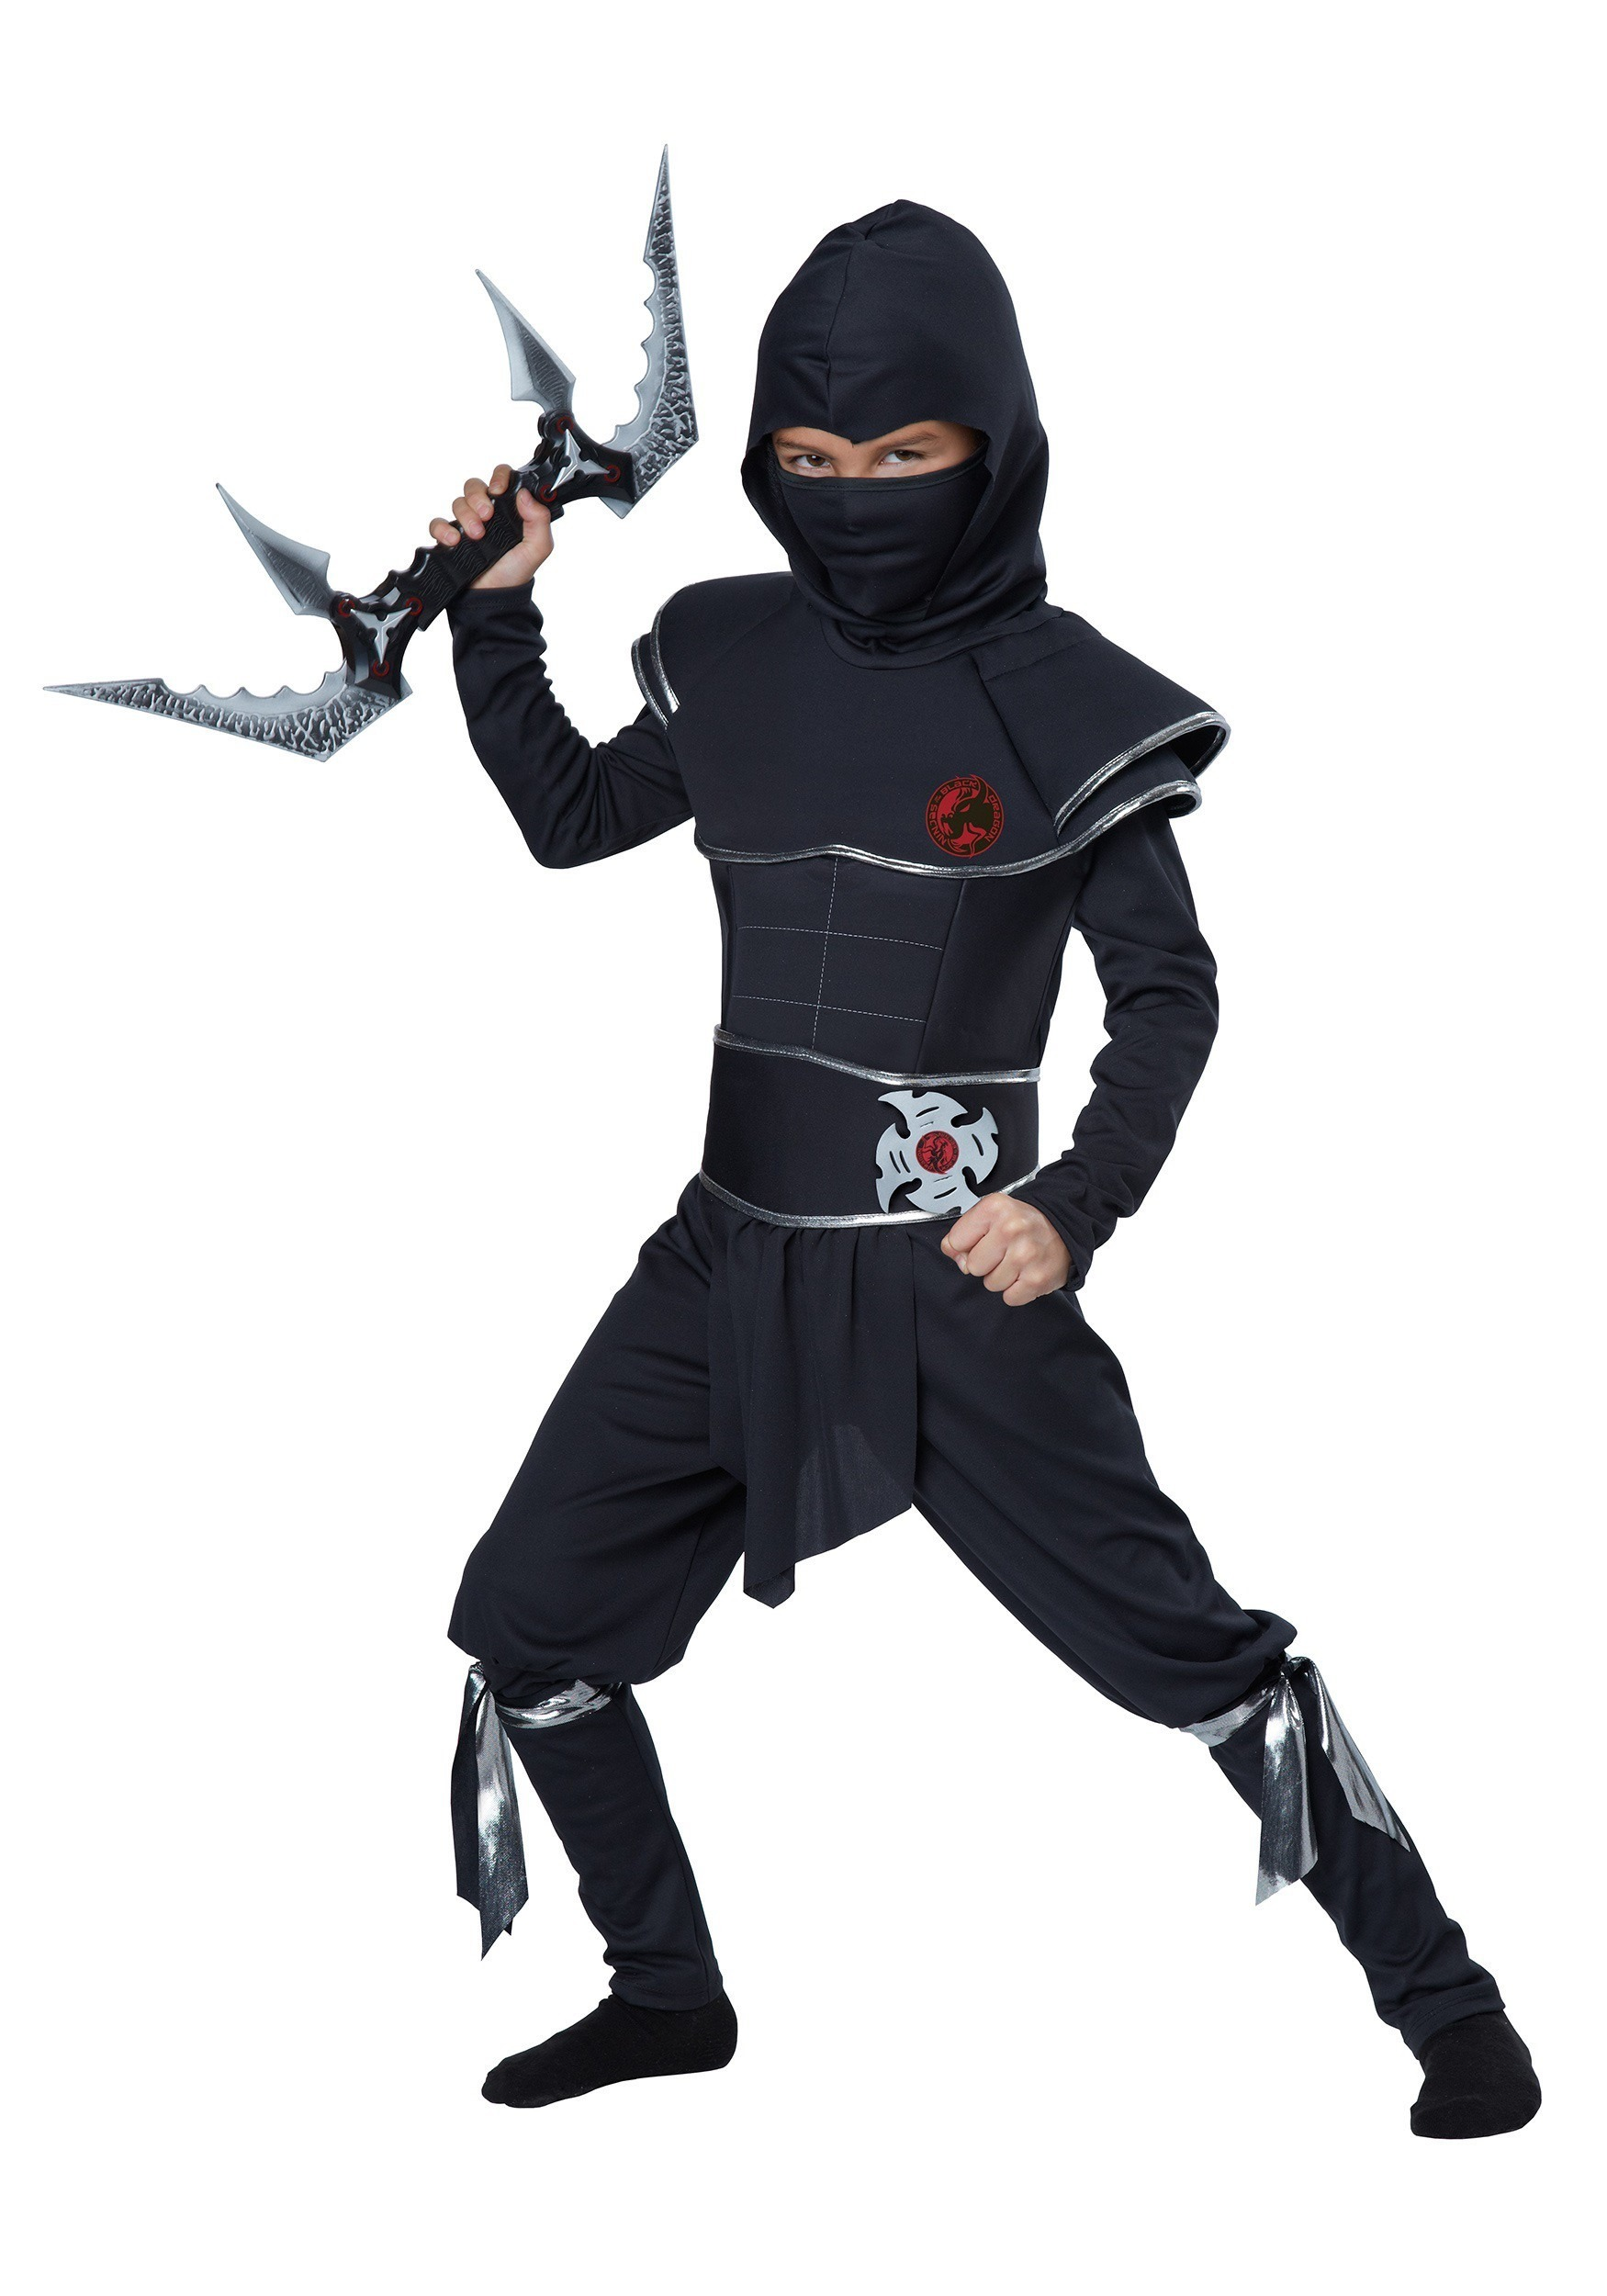 ninja costumes - adult, kids ninja halloween costume